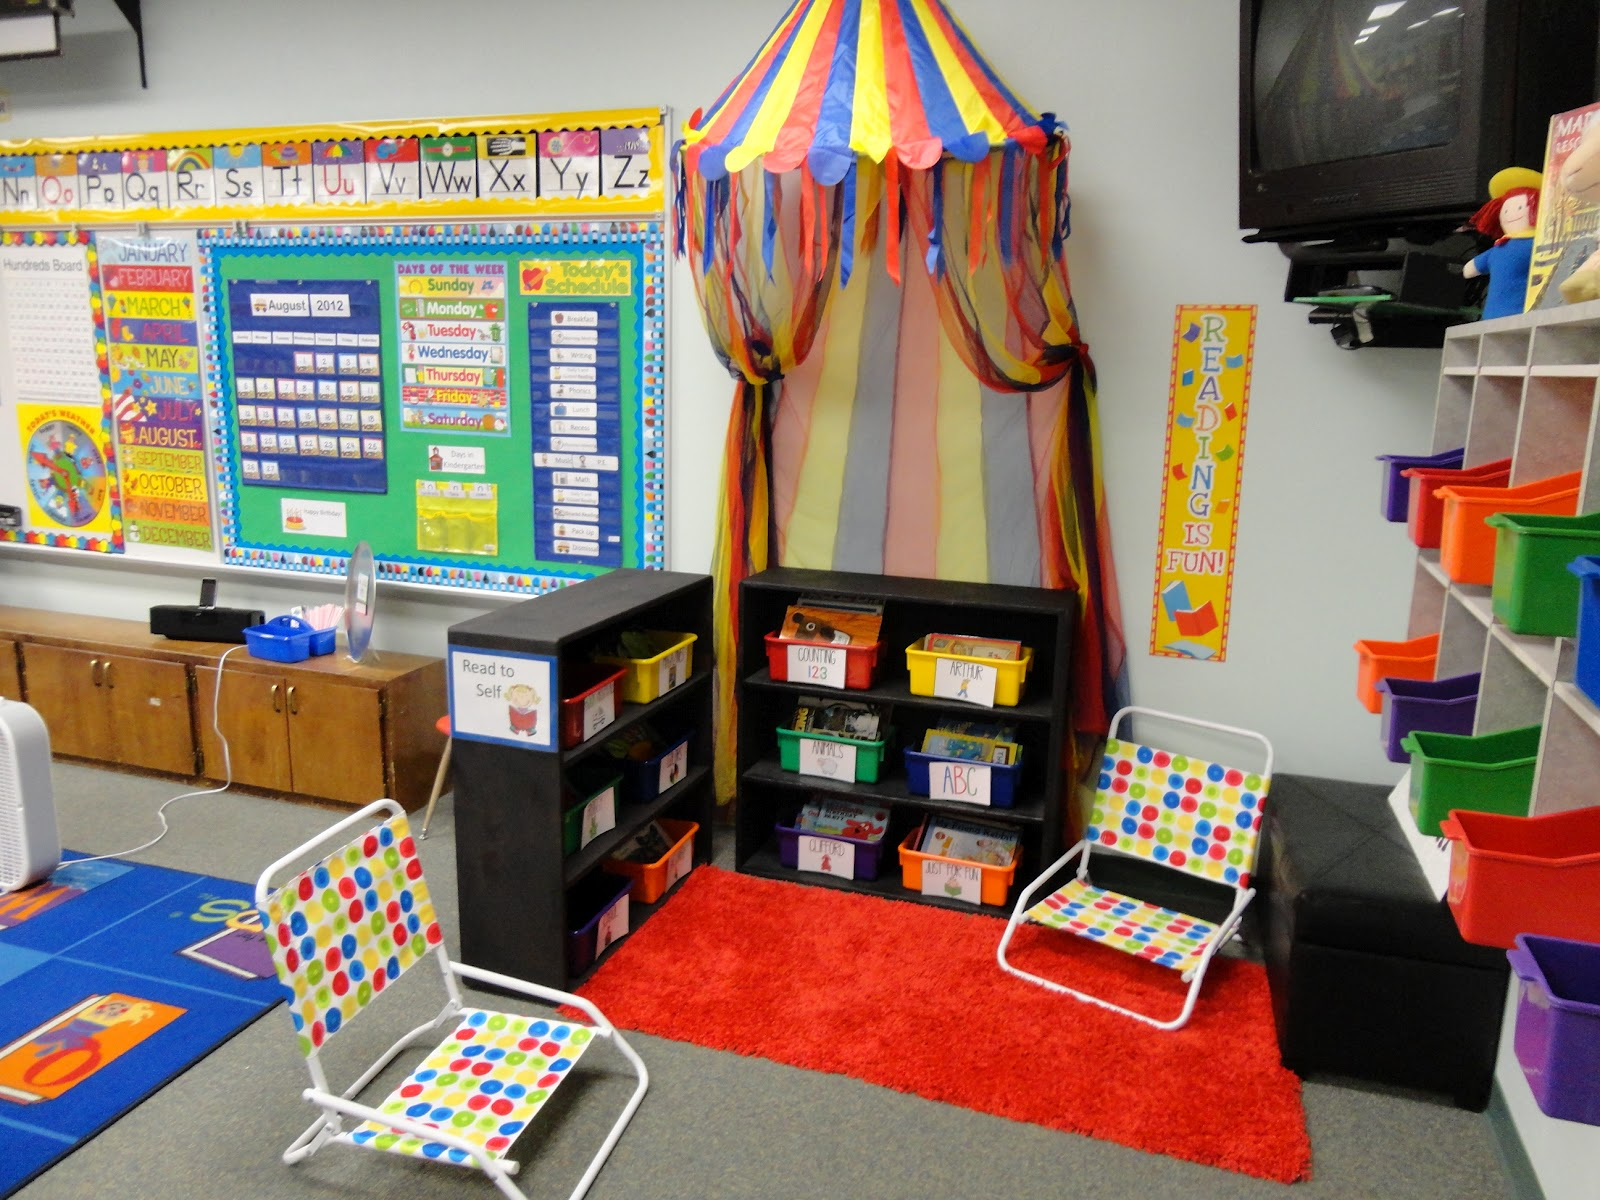 Circus Classroom Decoration Ideas : Welcome to the circus my big classroom reveal yeehaw